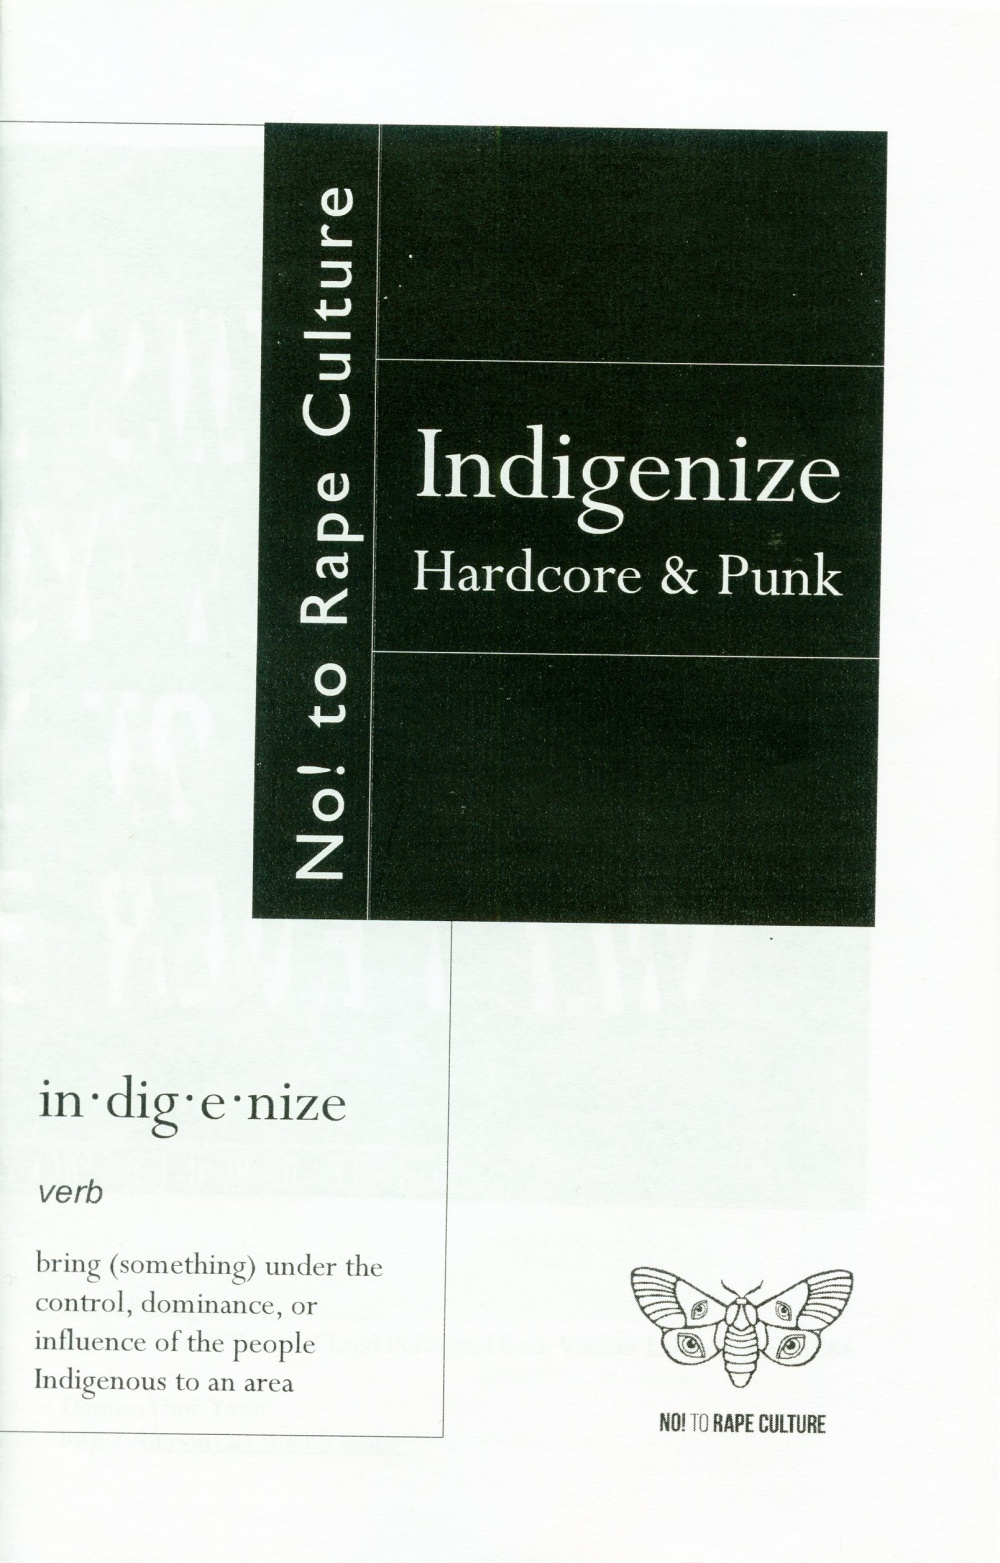 Indigenize hardcore & Punk